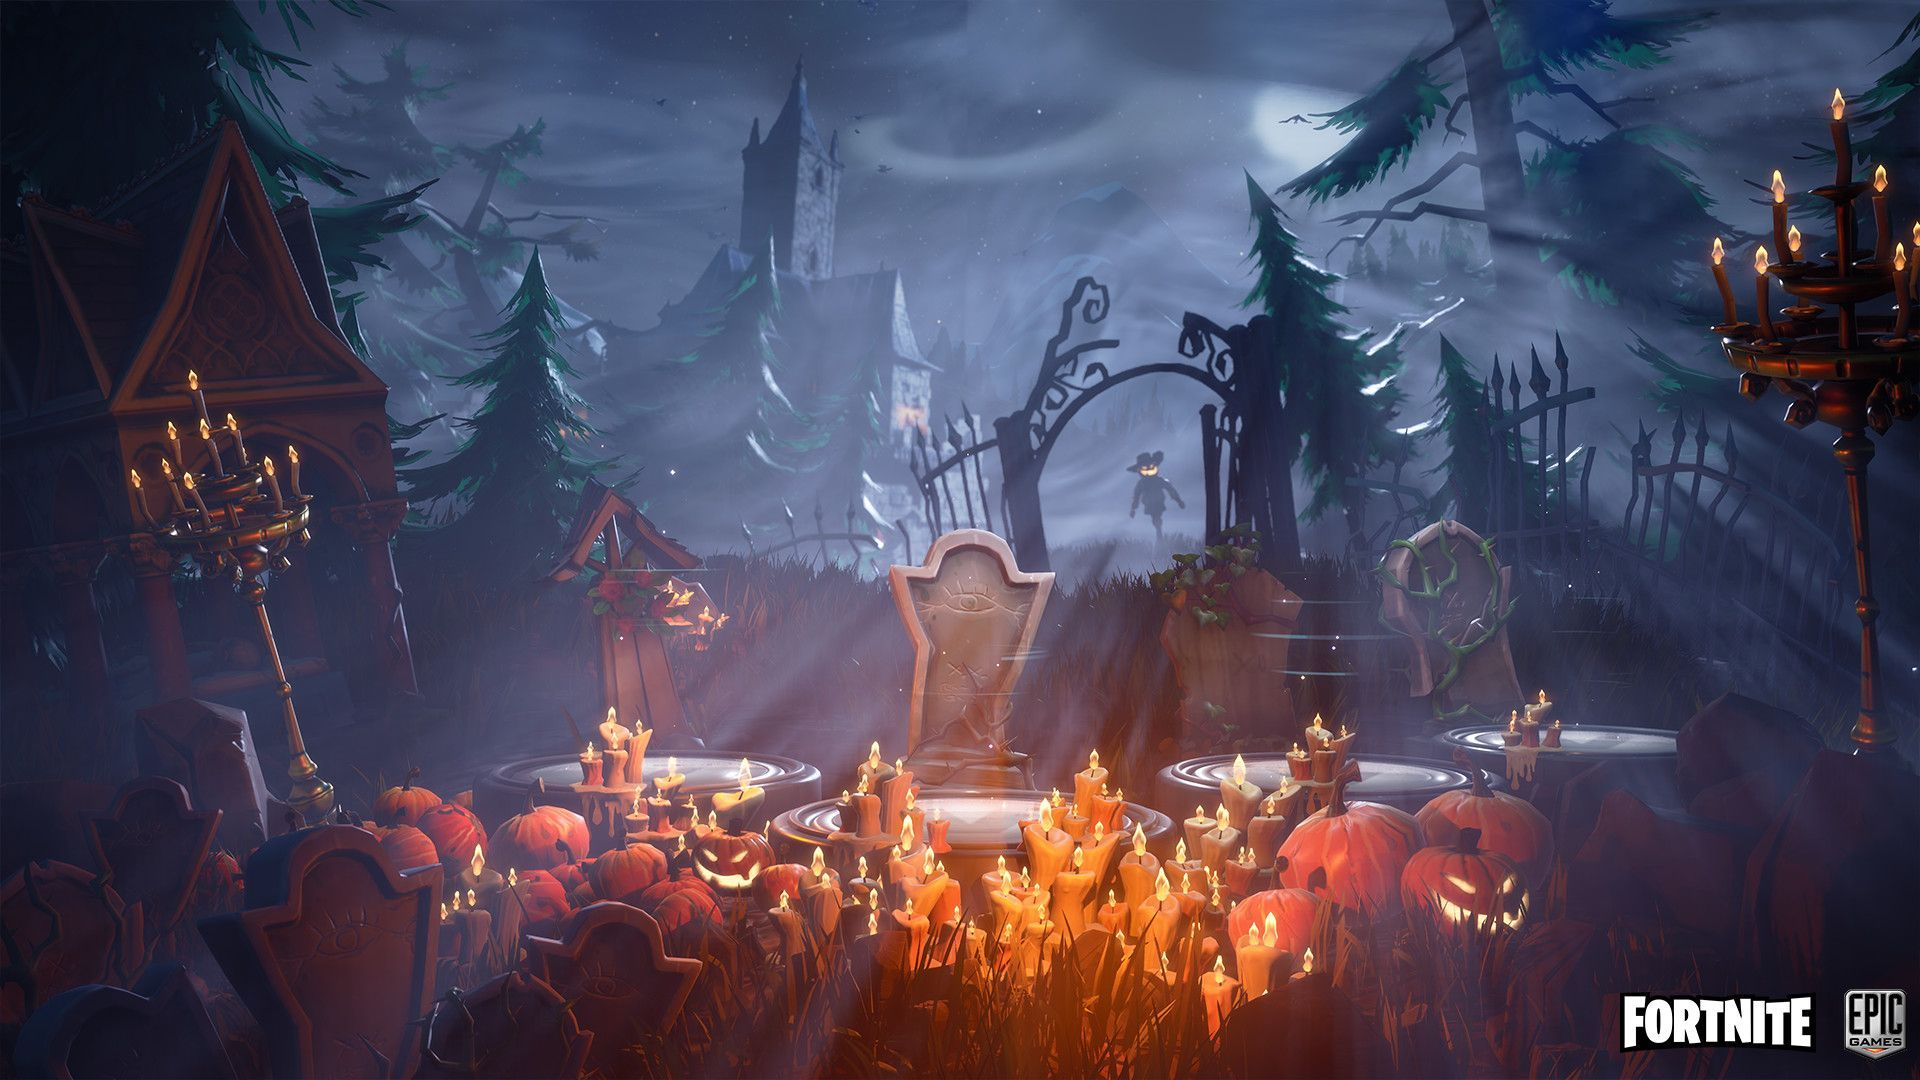 Hollaween Fortnite Wallpapers , Top Free Hollaween Fortnite